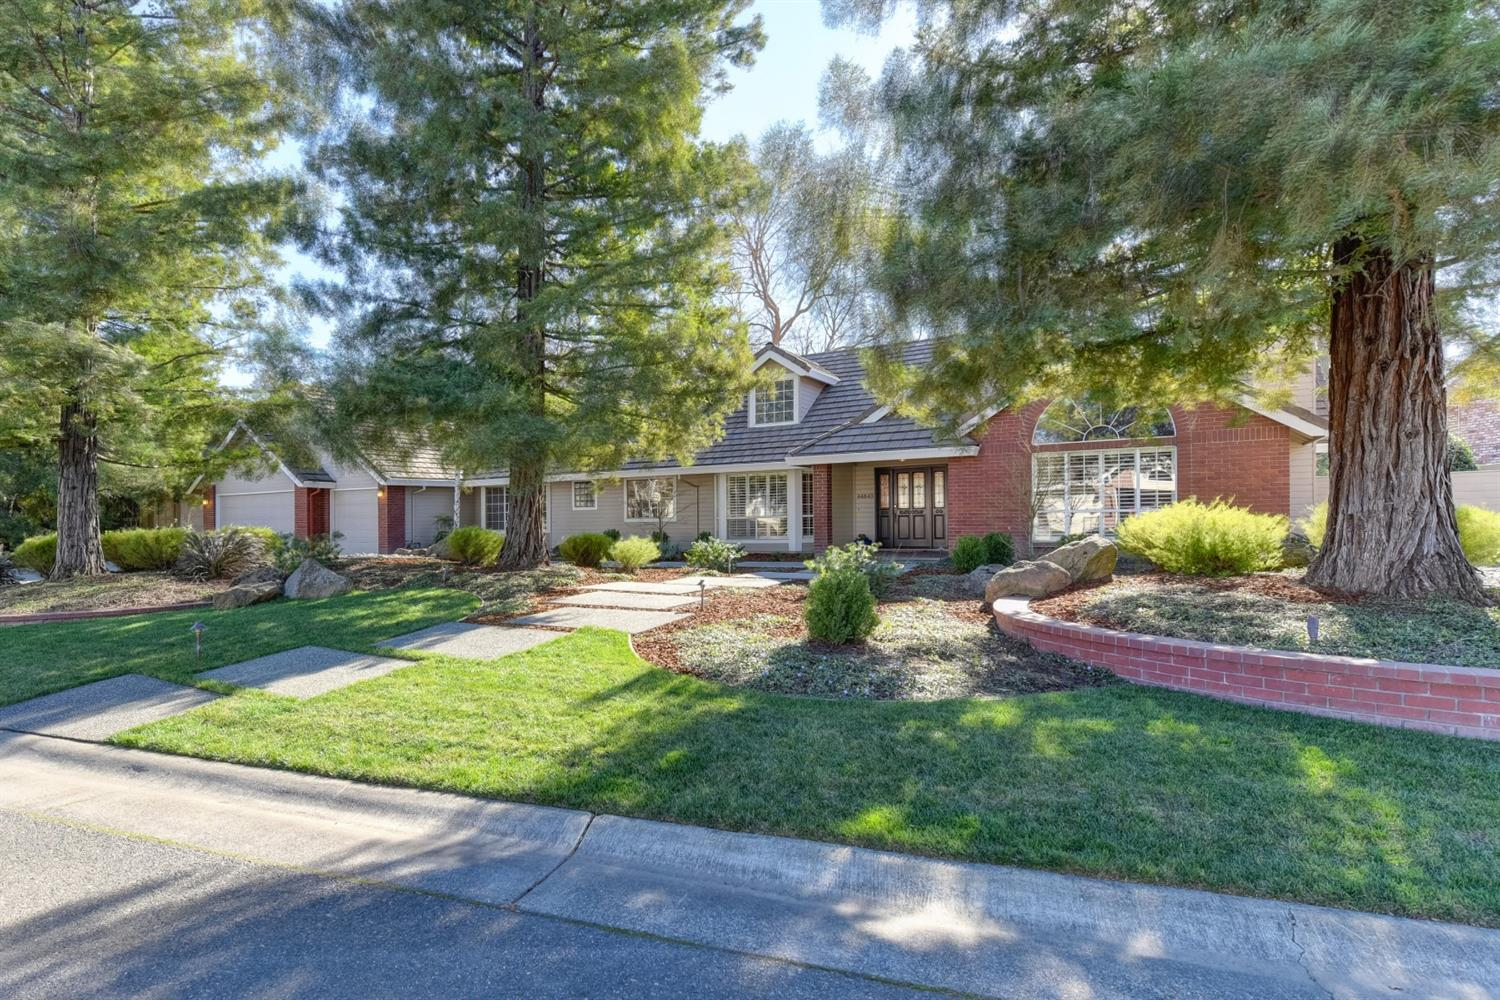 $1,050,000 - 4Br/3Ba -  for Sale in El Macero, El Macero